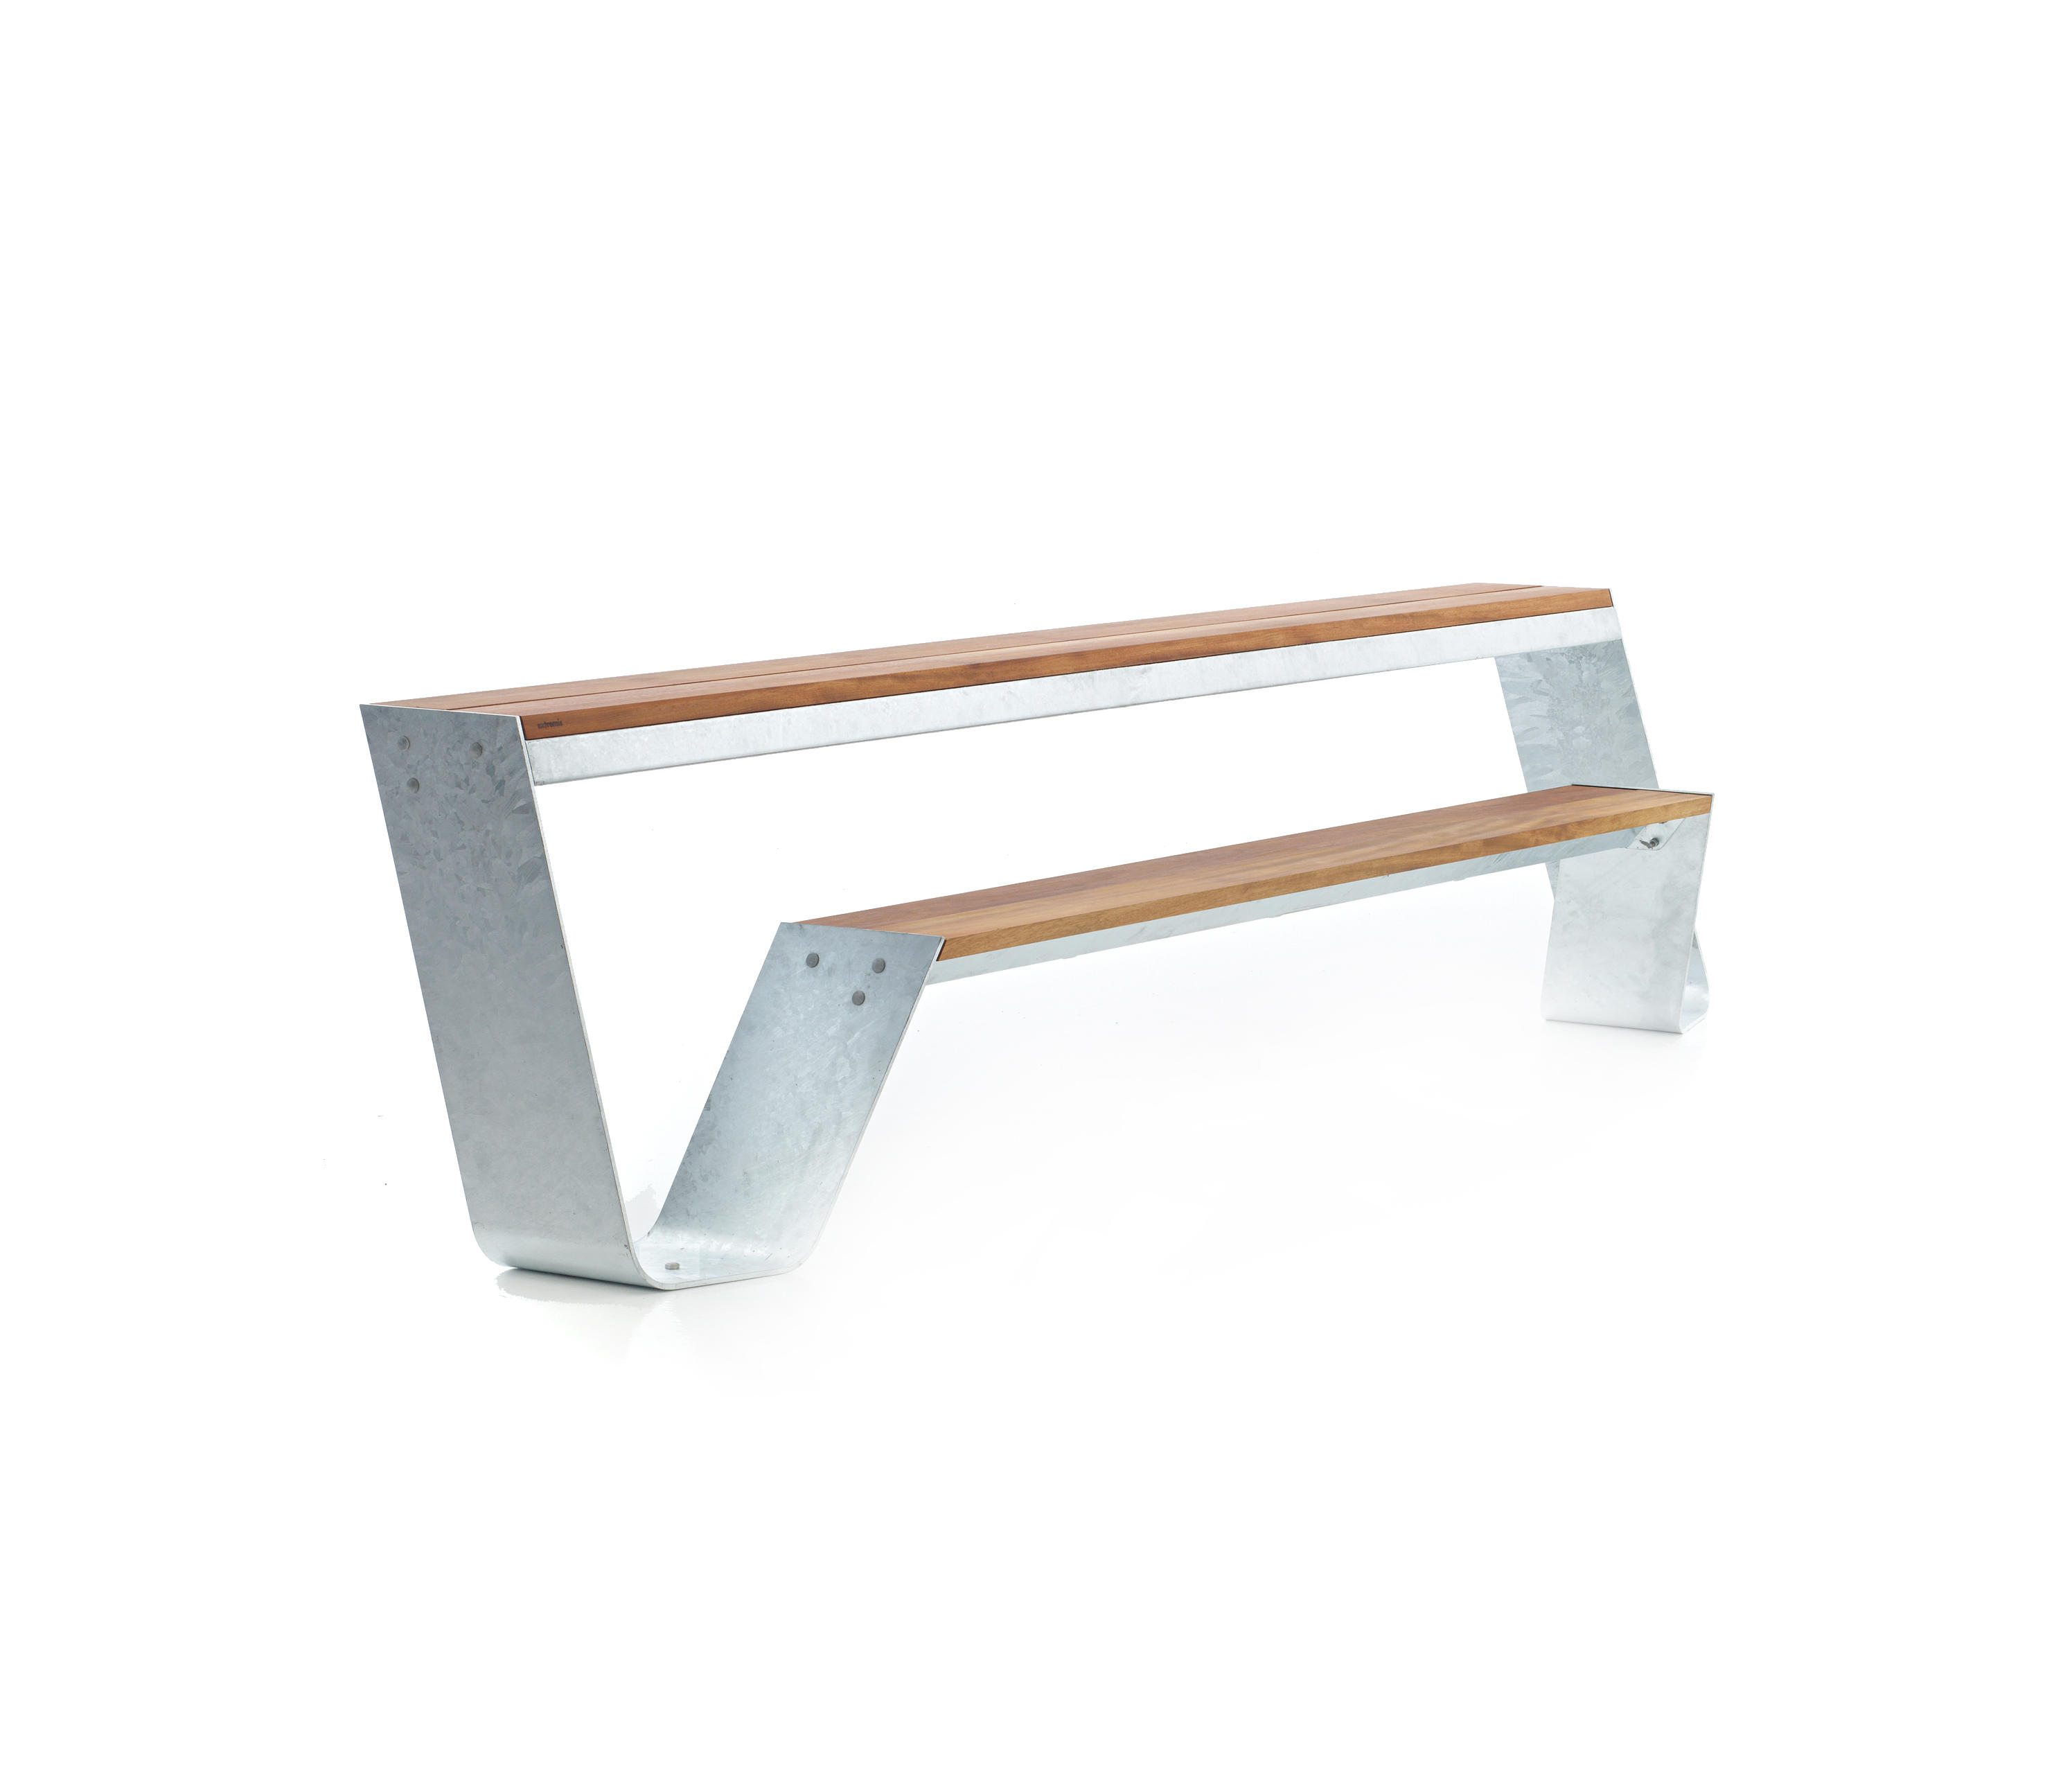 Hopper bench by extremis | Tables and benches ...